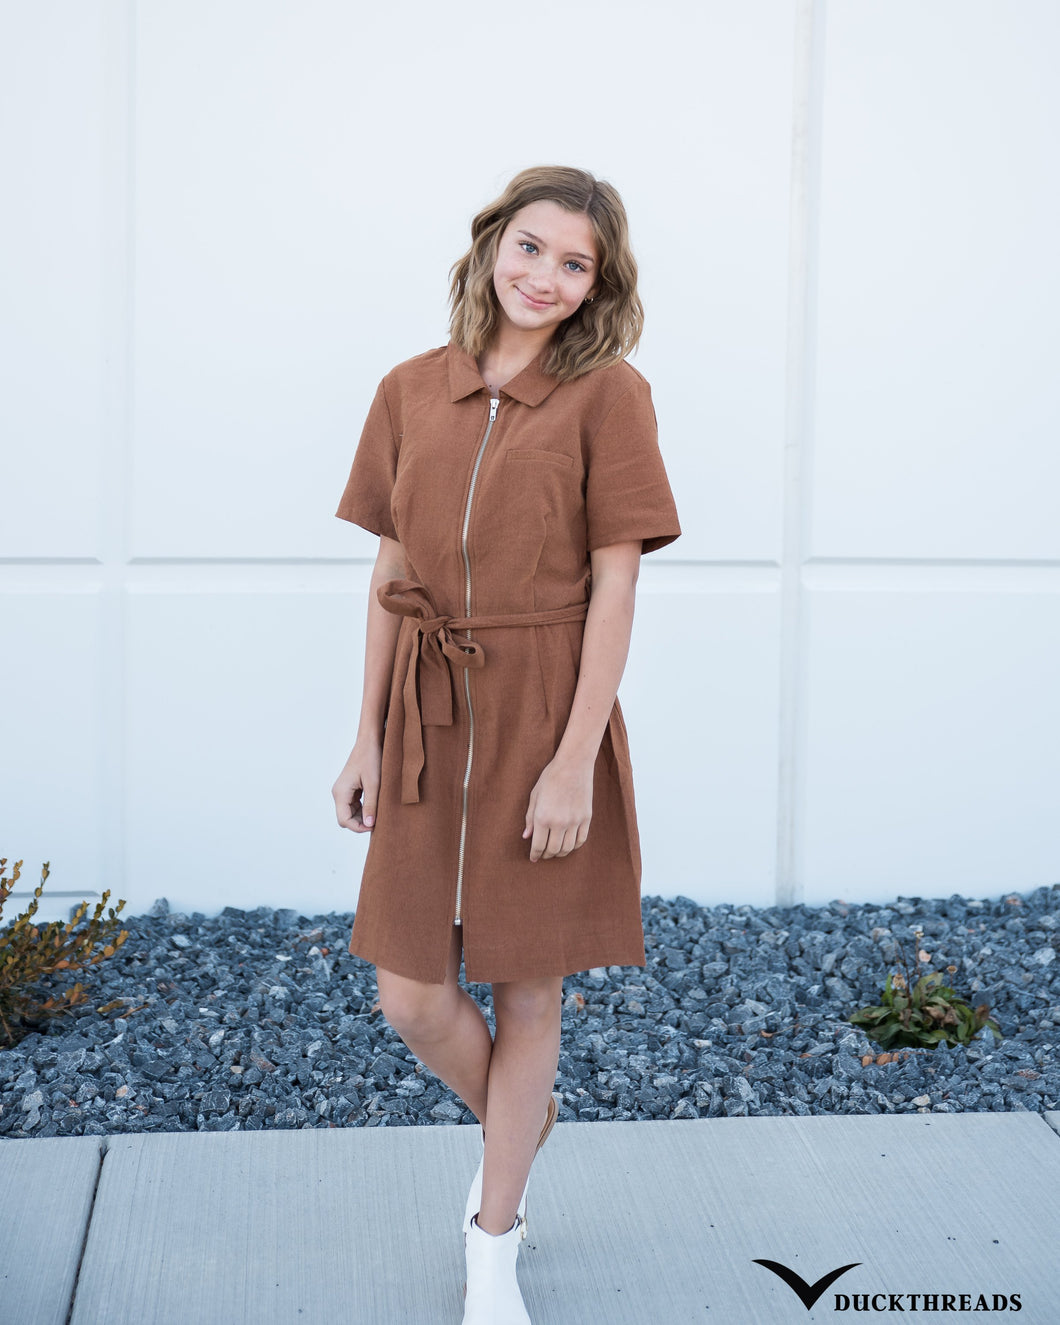 Women's Front-zip Corduroy Dress with Tie Belt - in Mocha